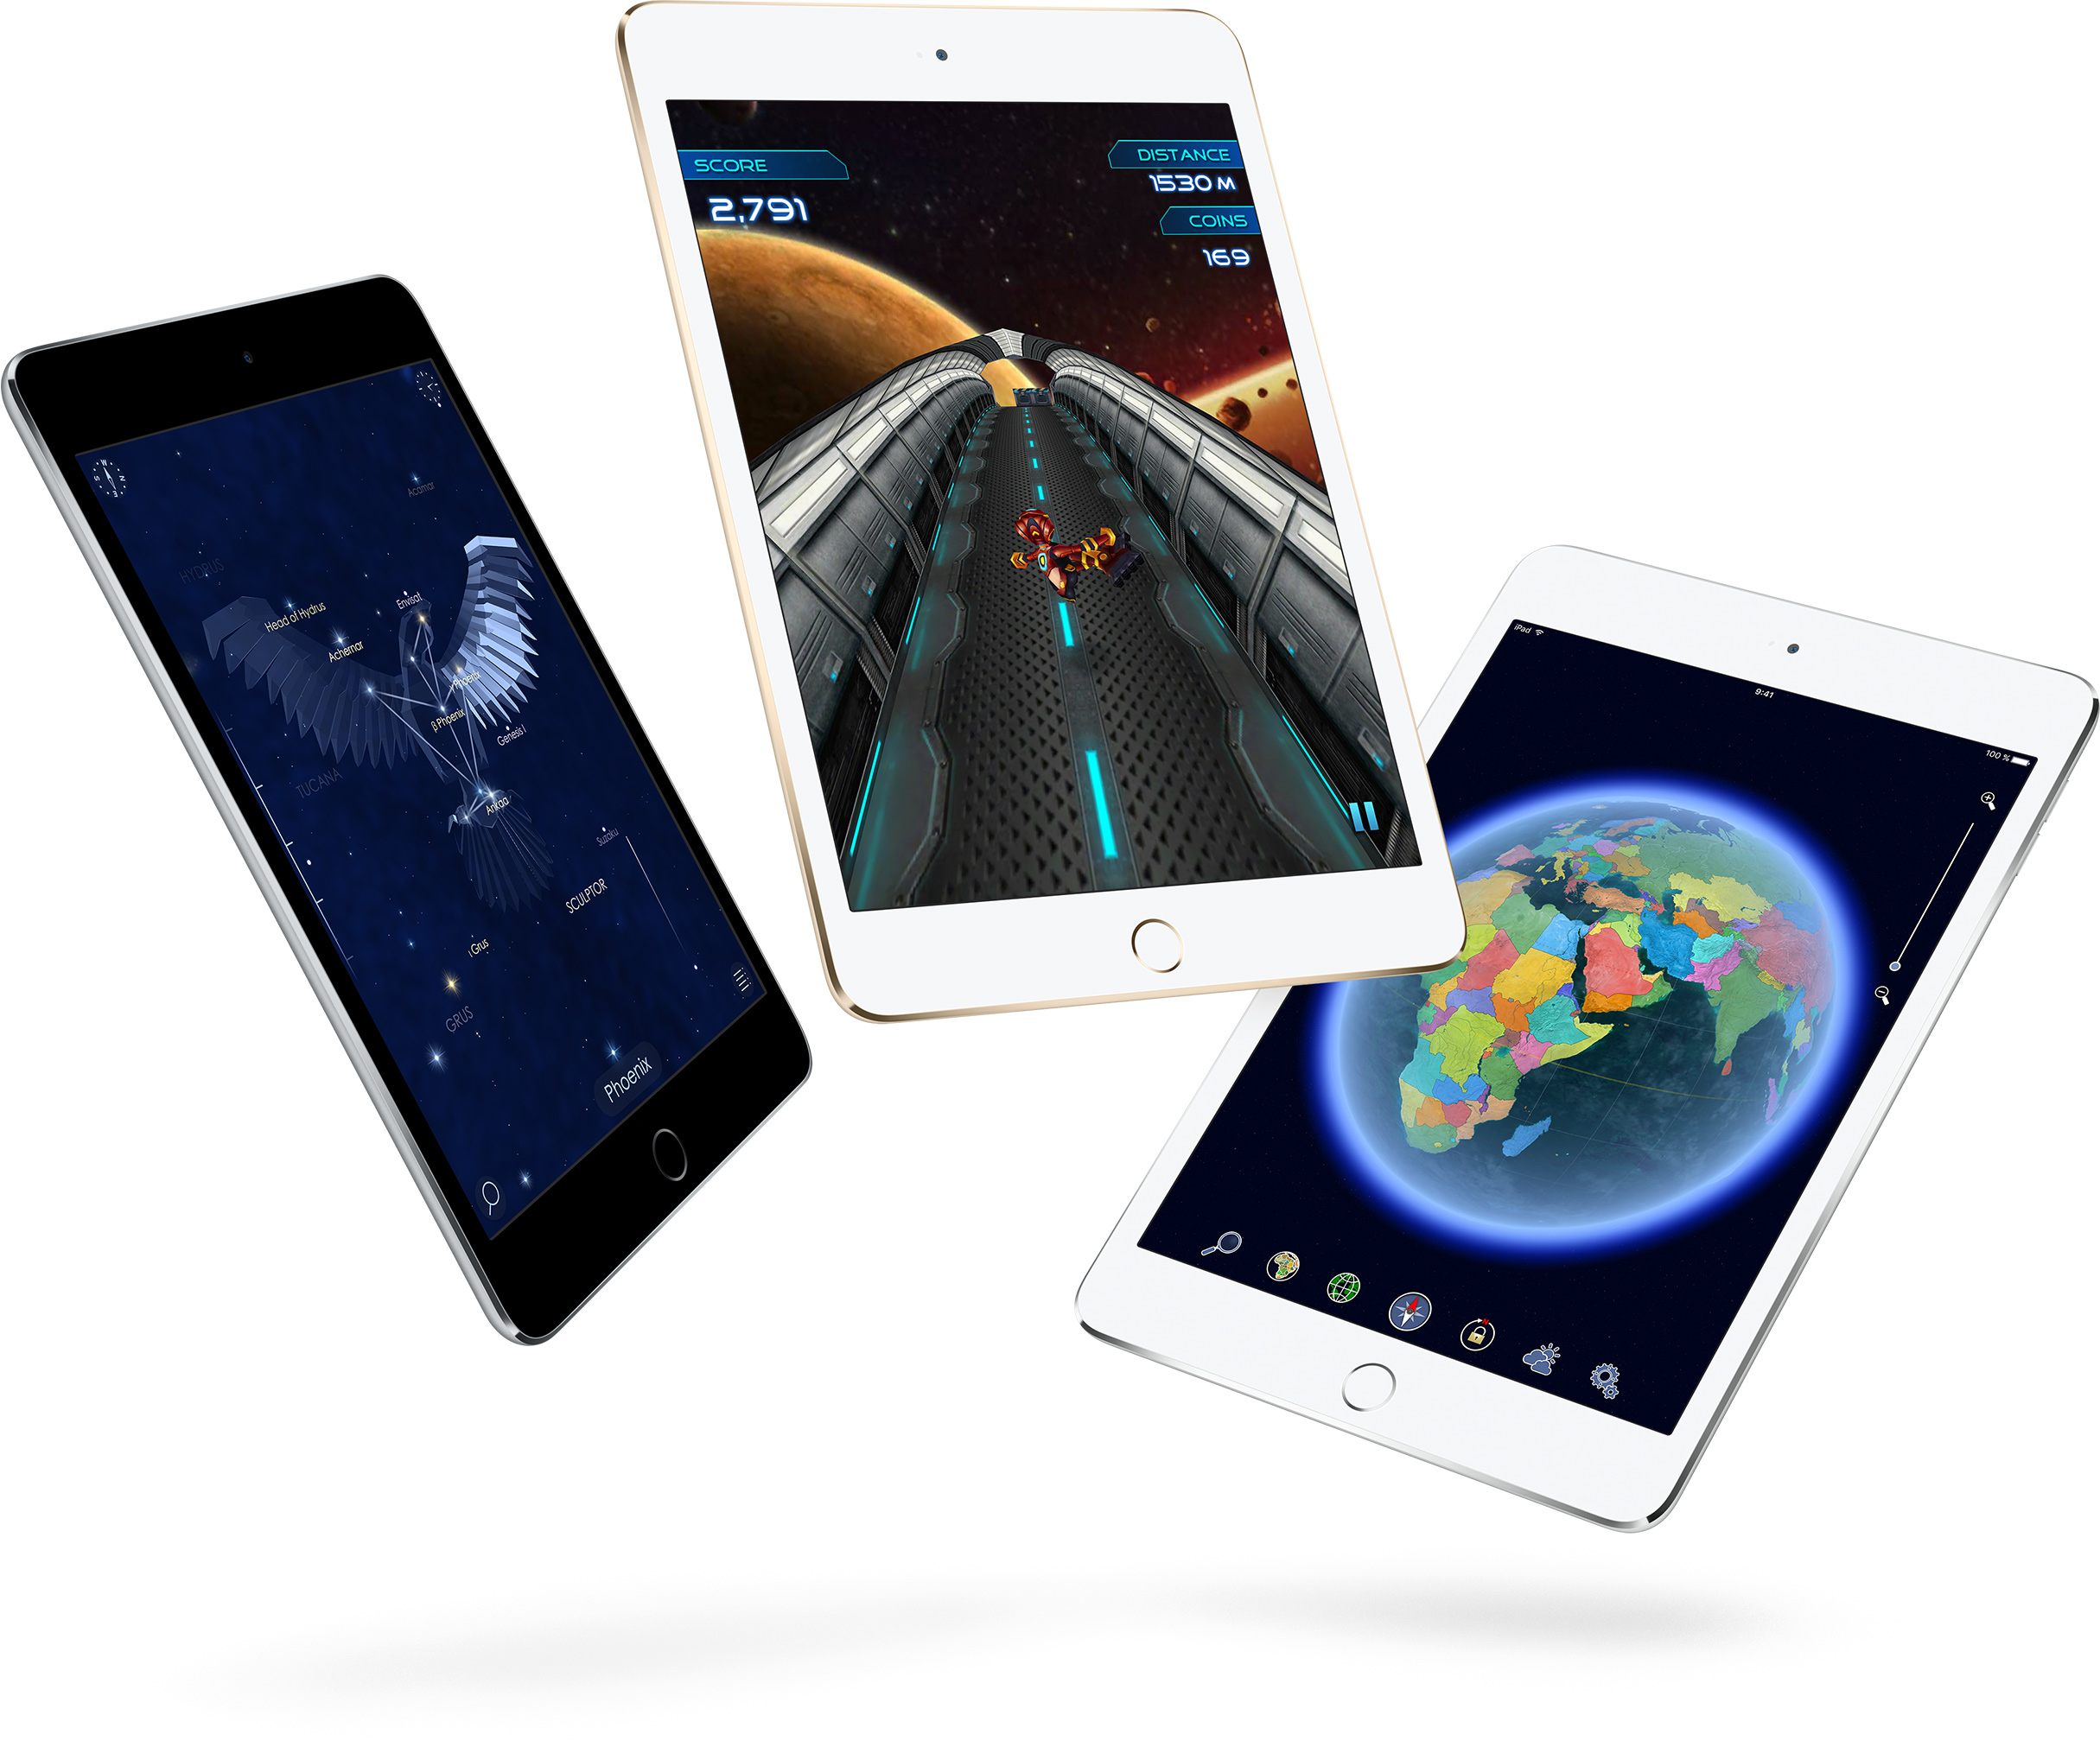 Apple iPad Mini 4, Эппл Айпад Мини 4